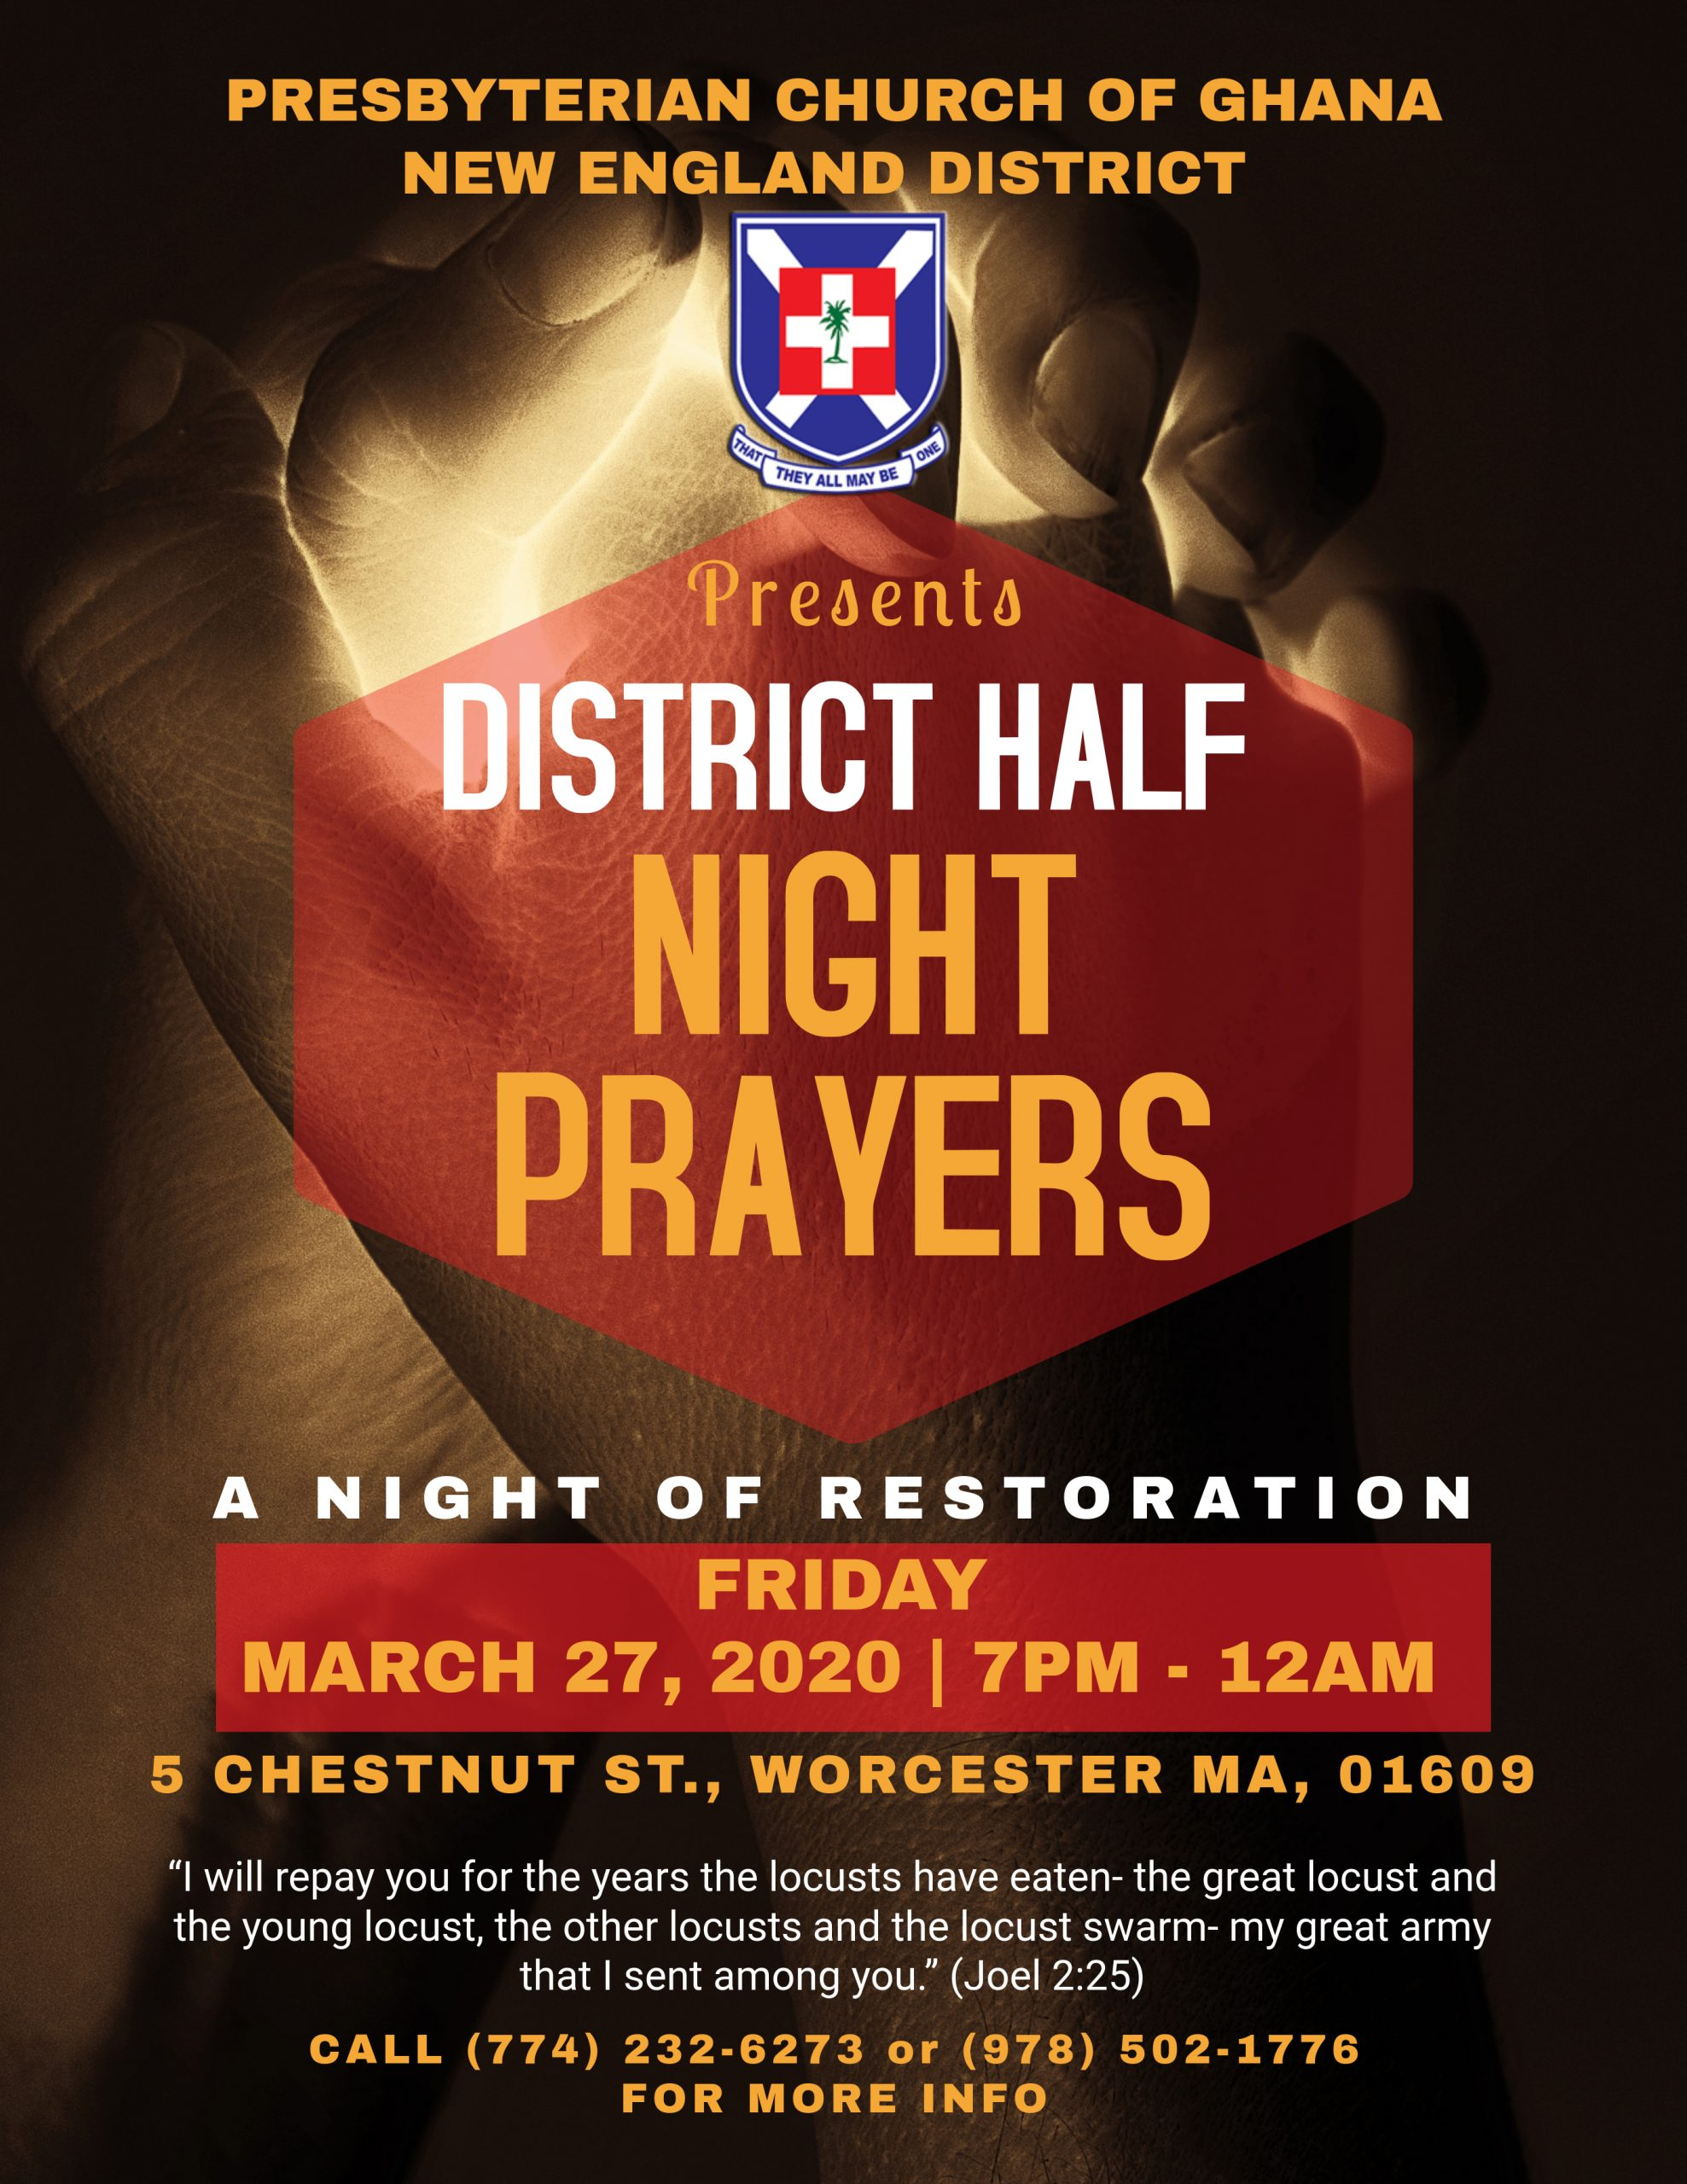 District Half Night Prayers